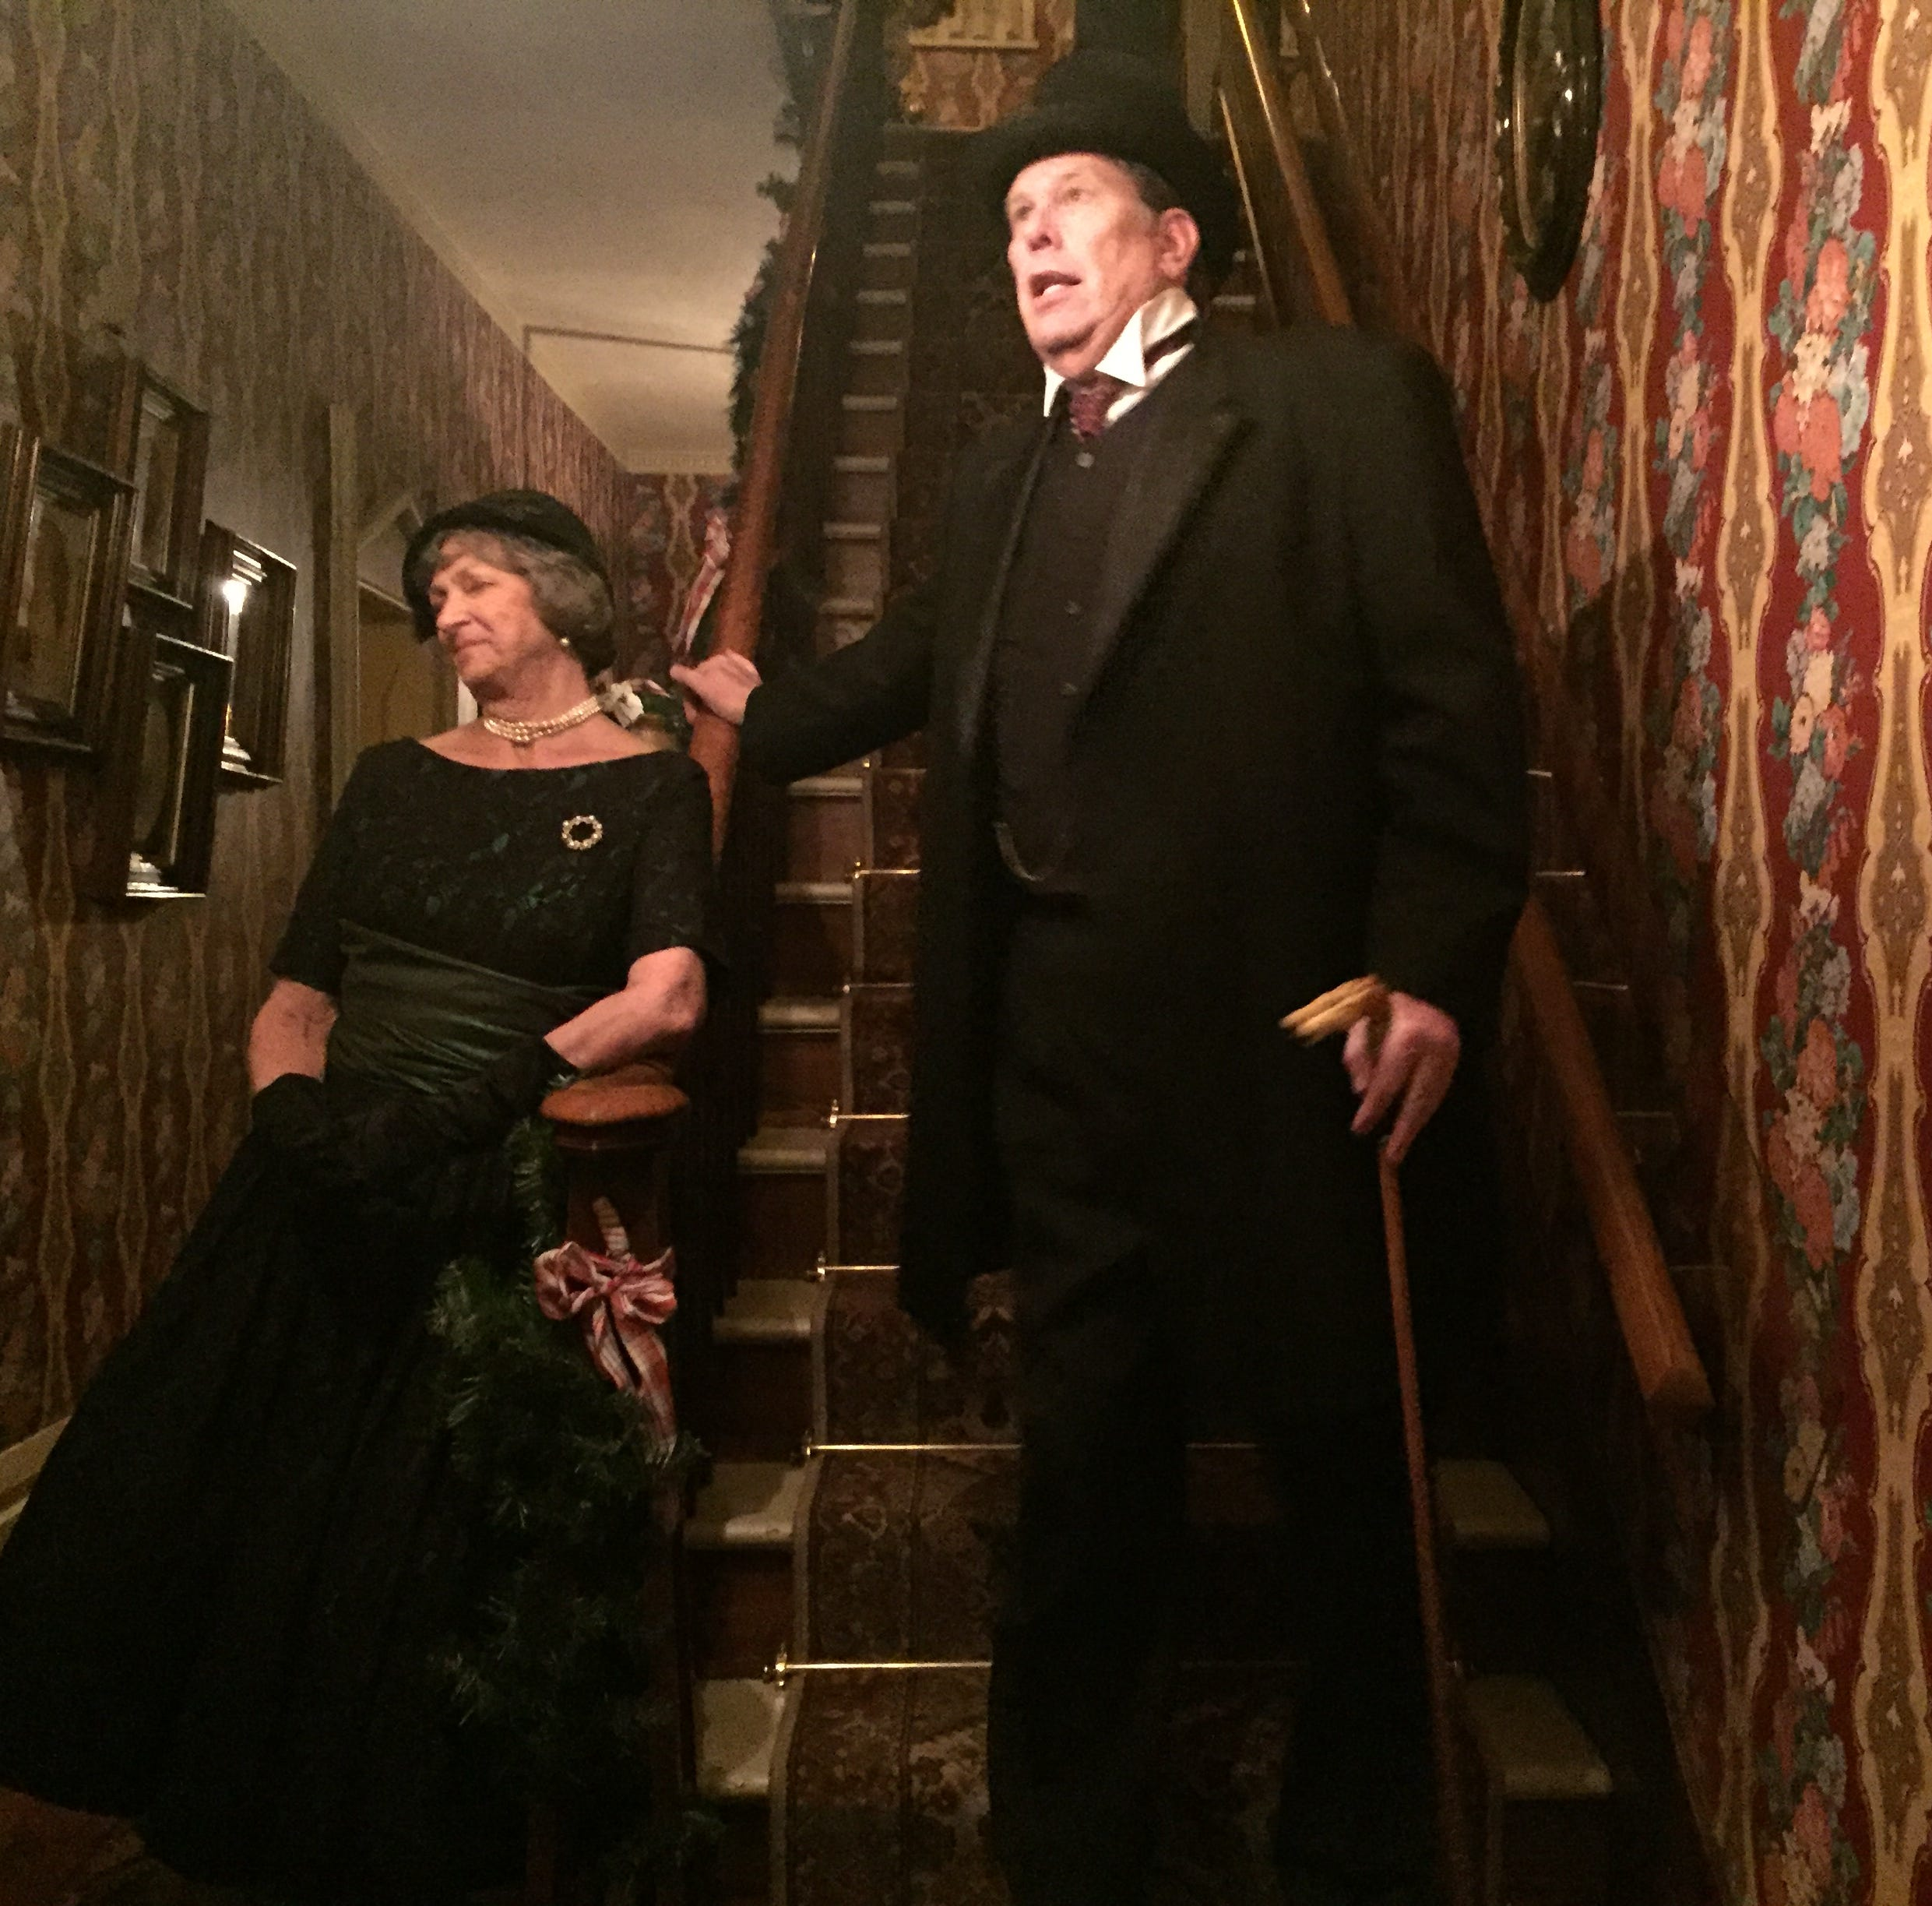 Oak Hill Cottage comes alive with 'Ghosts of Christmas Past'